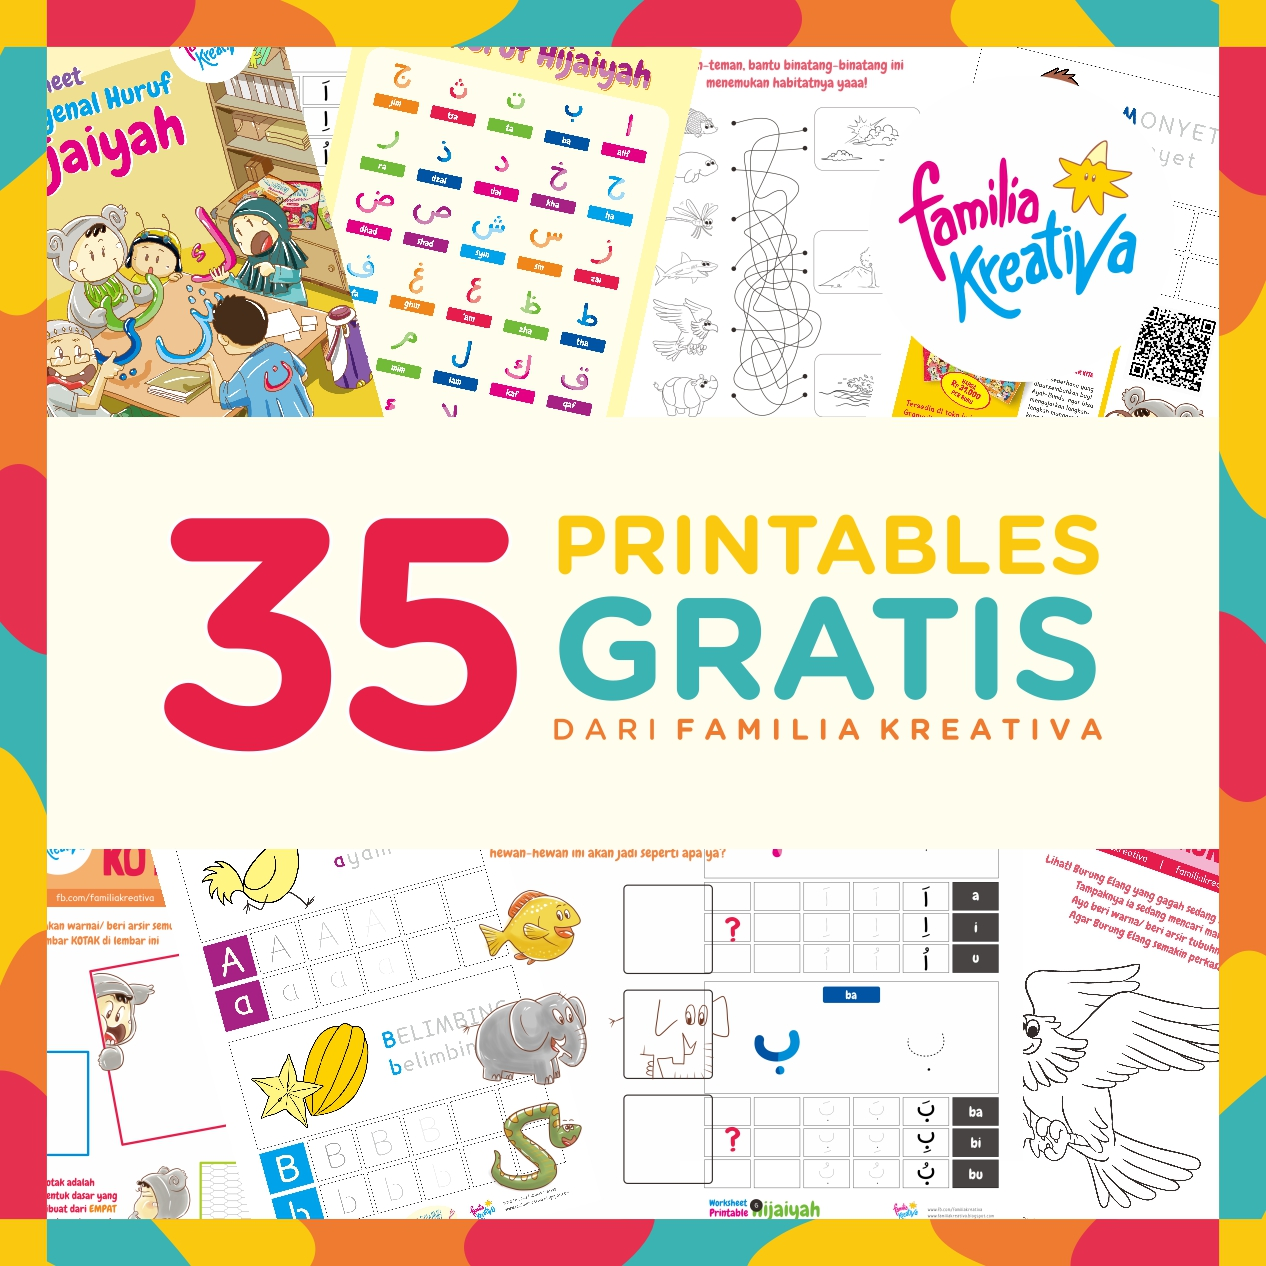 photograph relating to Printable Photos named 35 Printables GRATIS dari Familia Kreativa